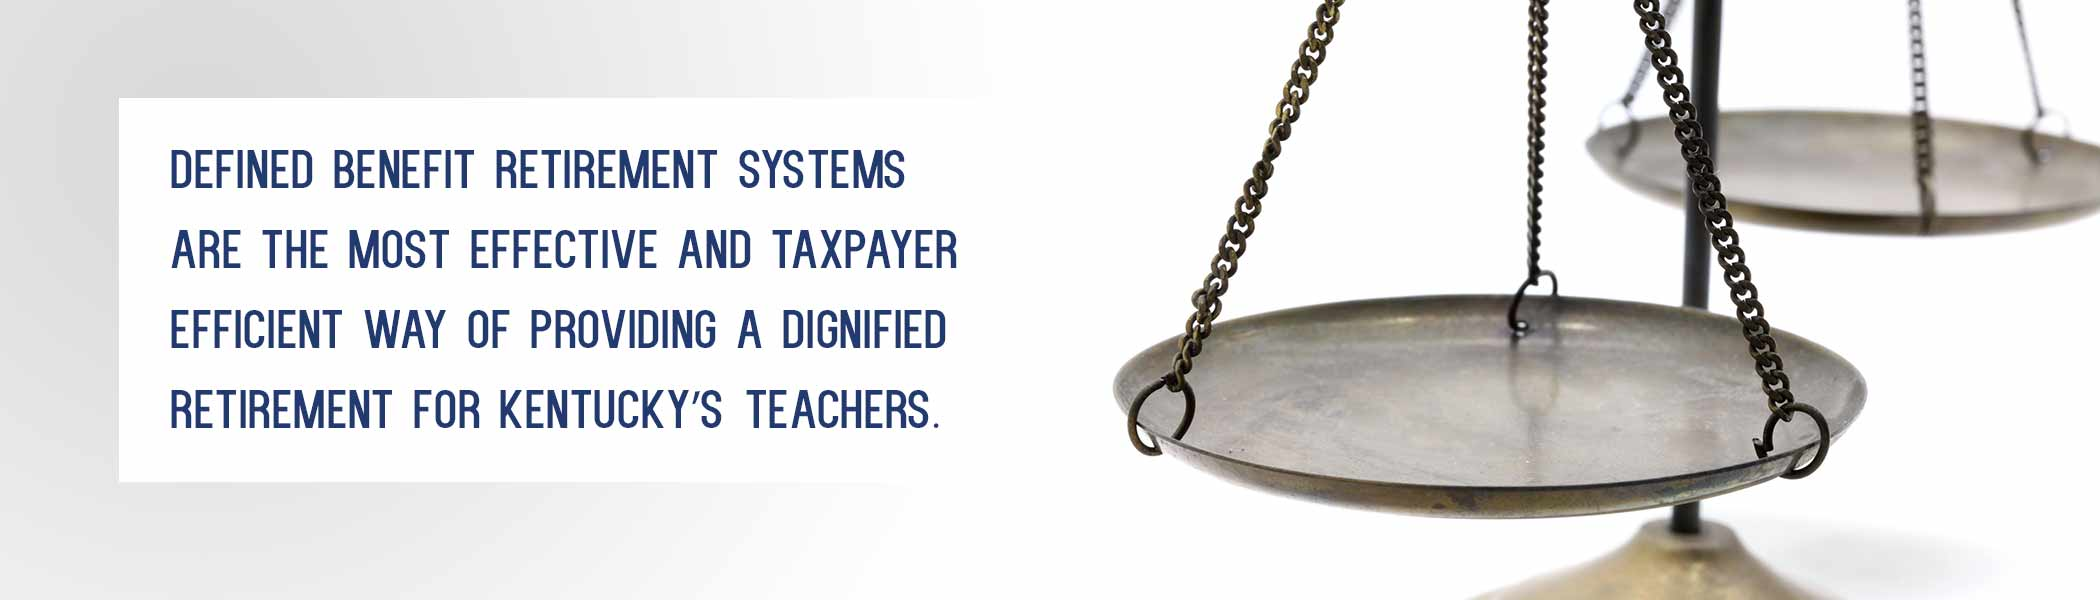 close shot of old balance scales. The copy reads: Defined Benefit Retirement Systems are the most effective and taxpayer efficient way of providing a dignified retirement for Kentucky's teachers.